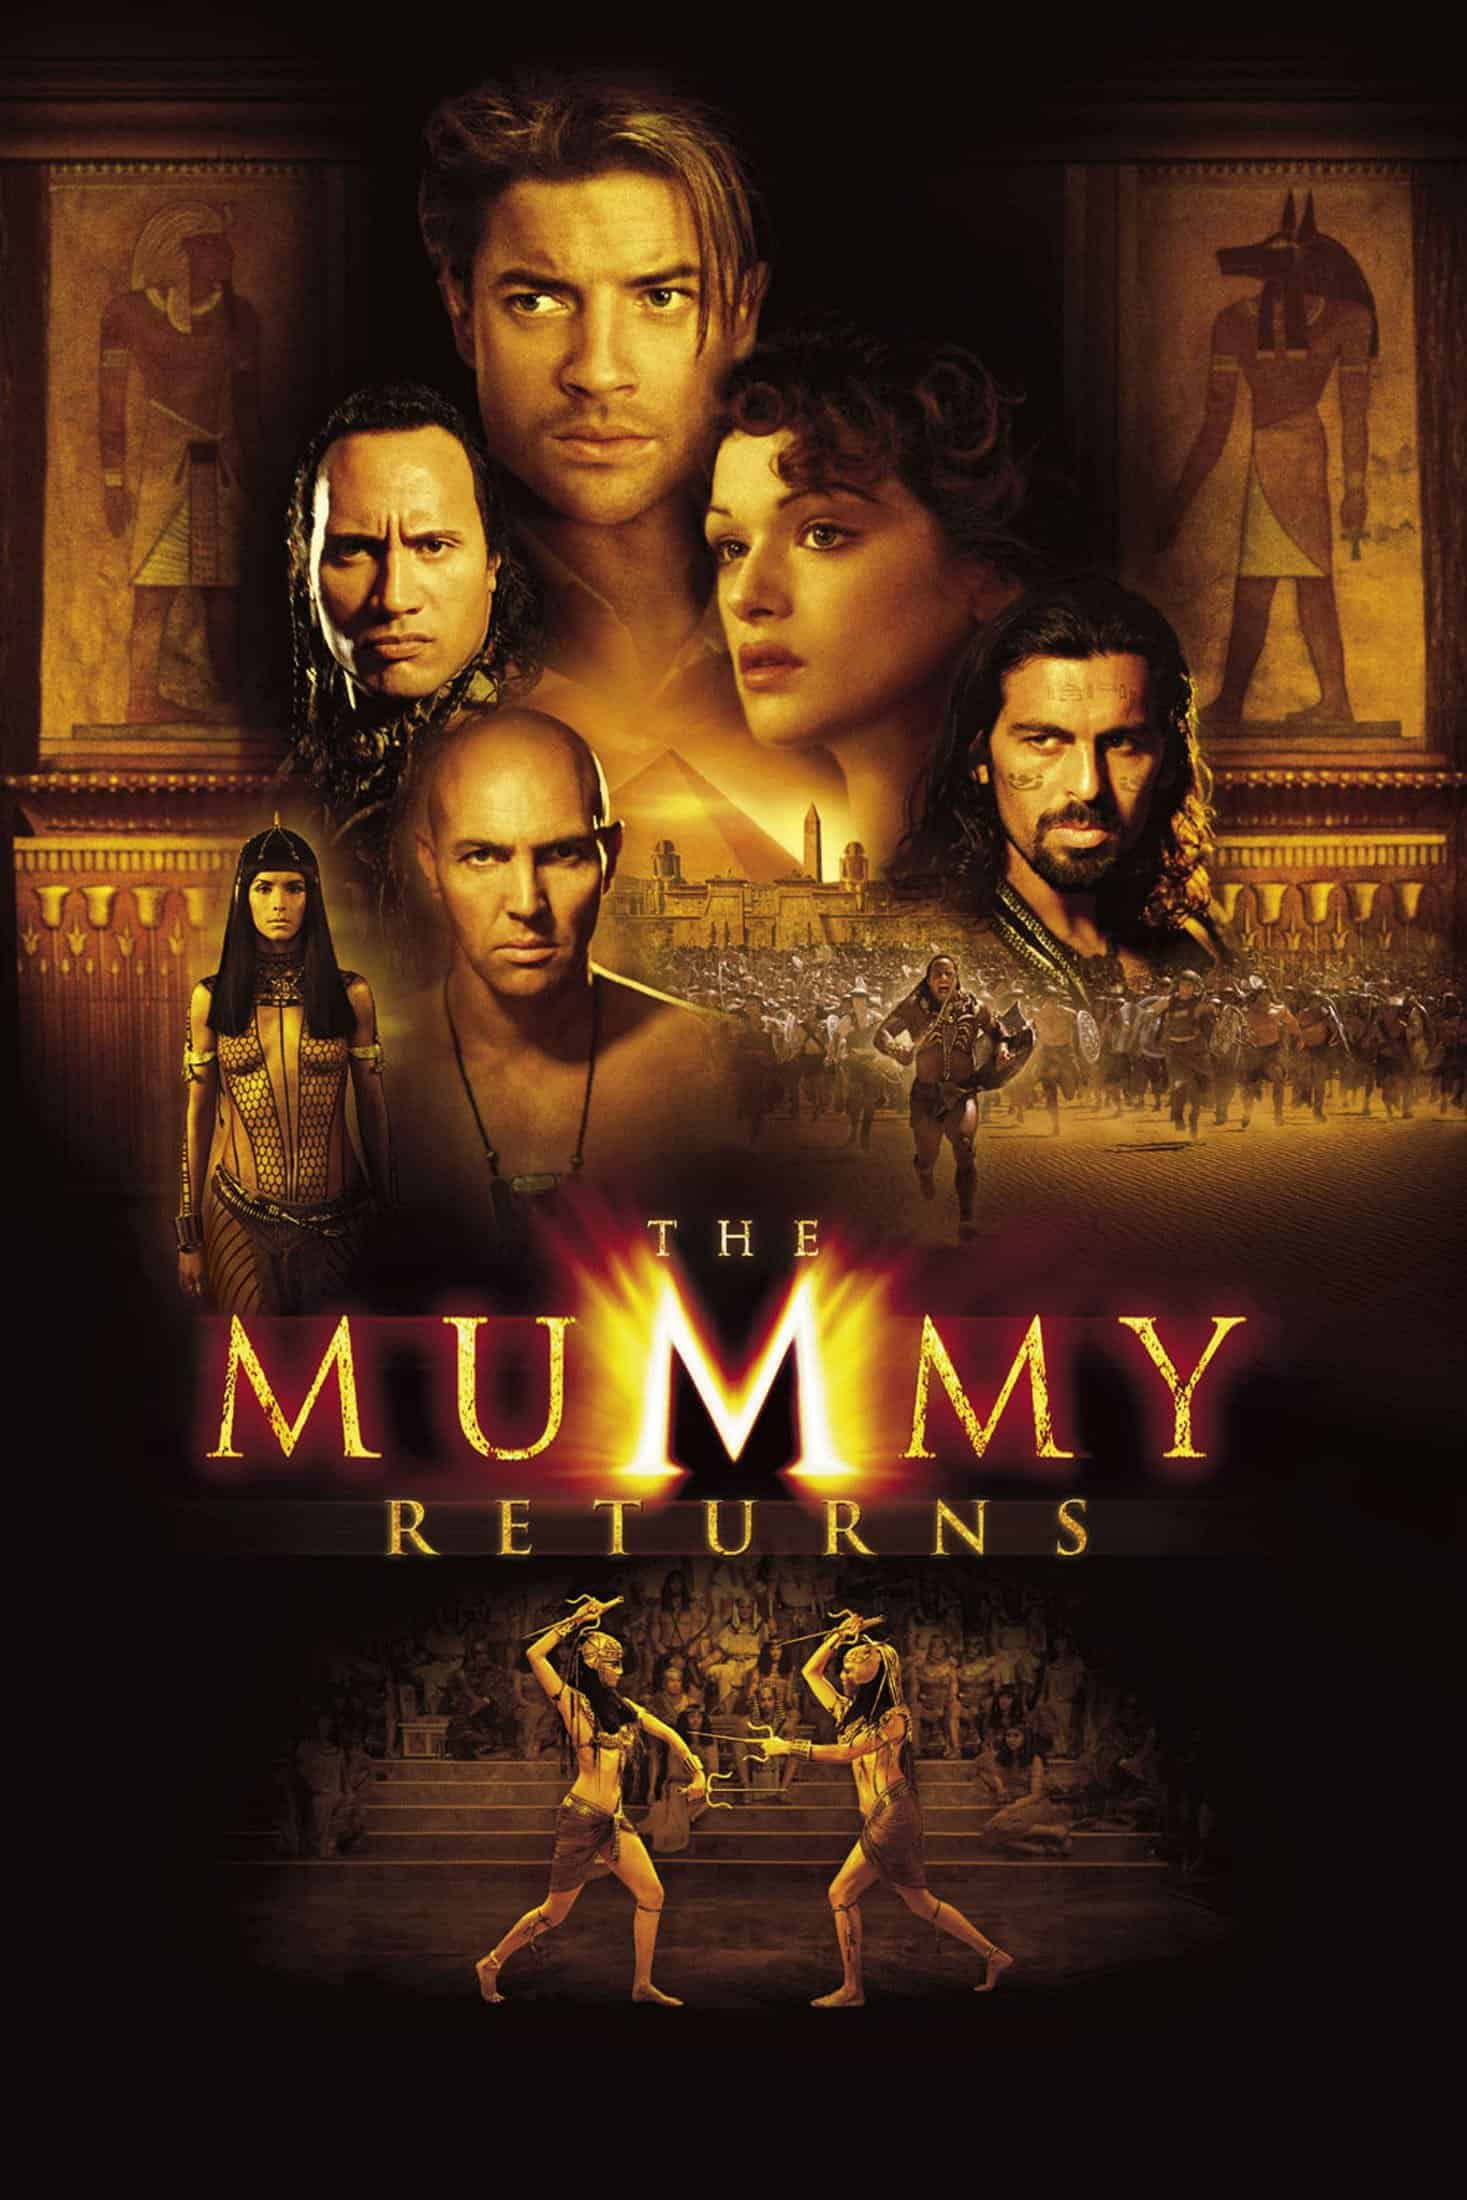 The Mummy Returns, 2001